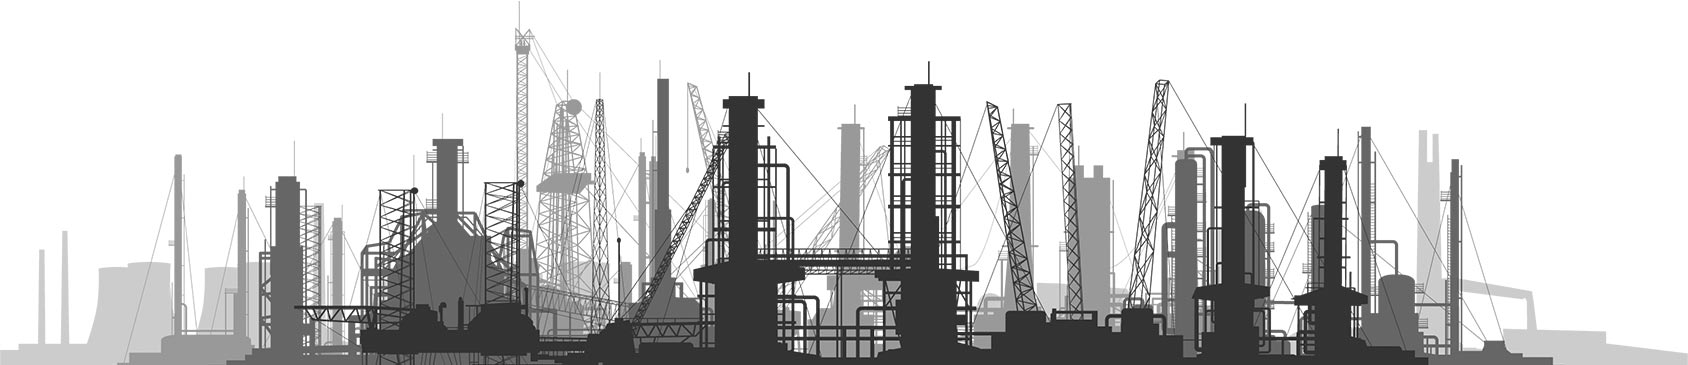 Industrial City Black and White